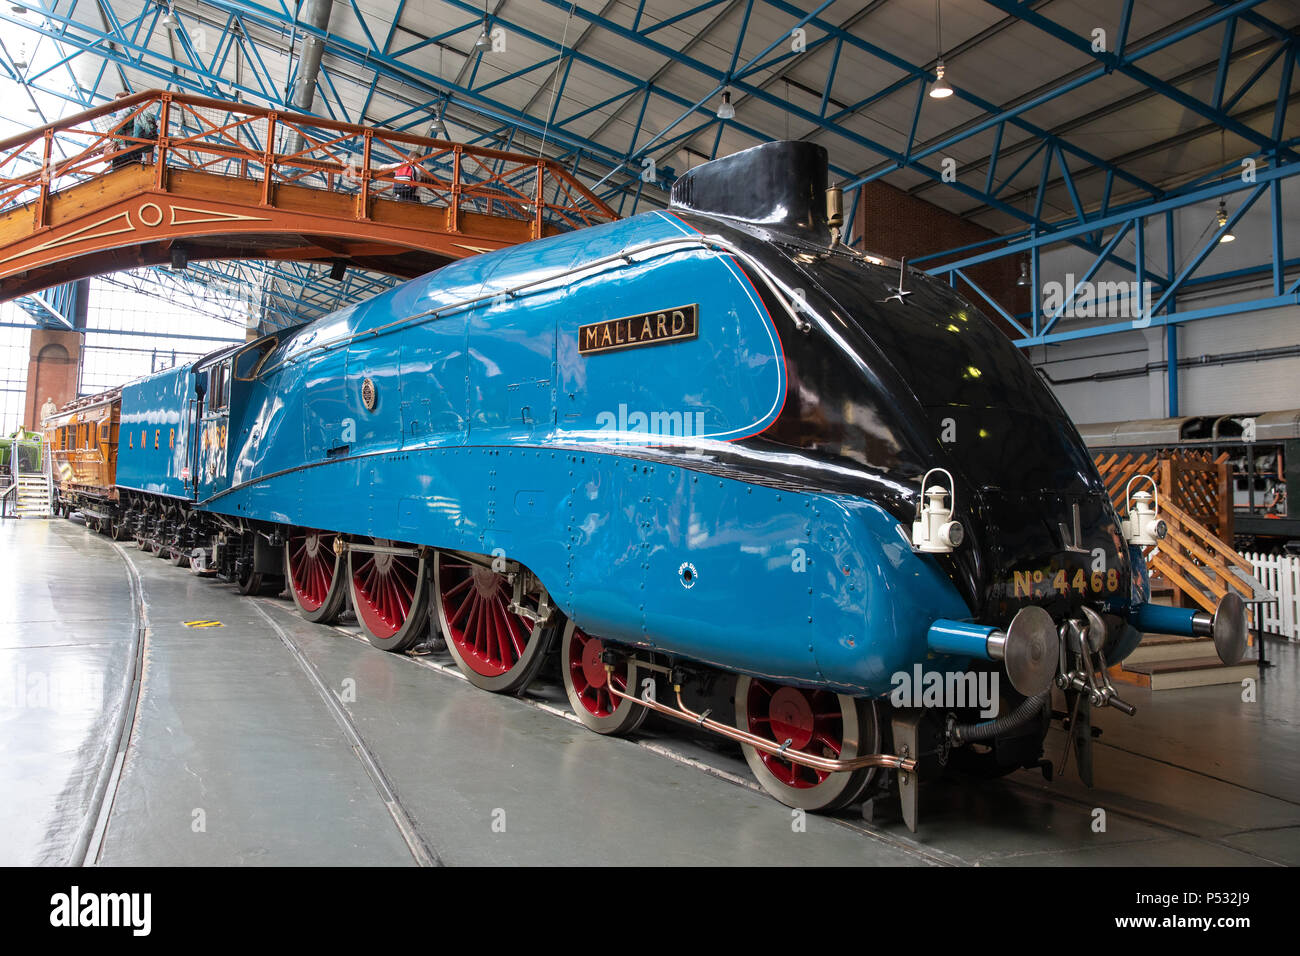 'Mallard', in The National Railway Museum, York, England - Stock Image